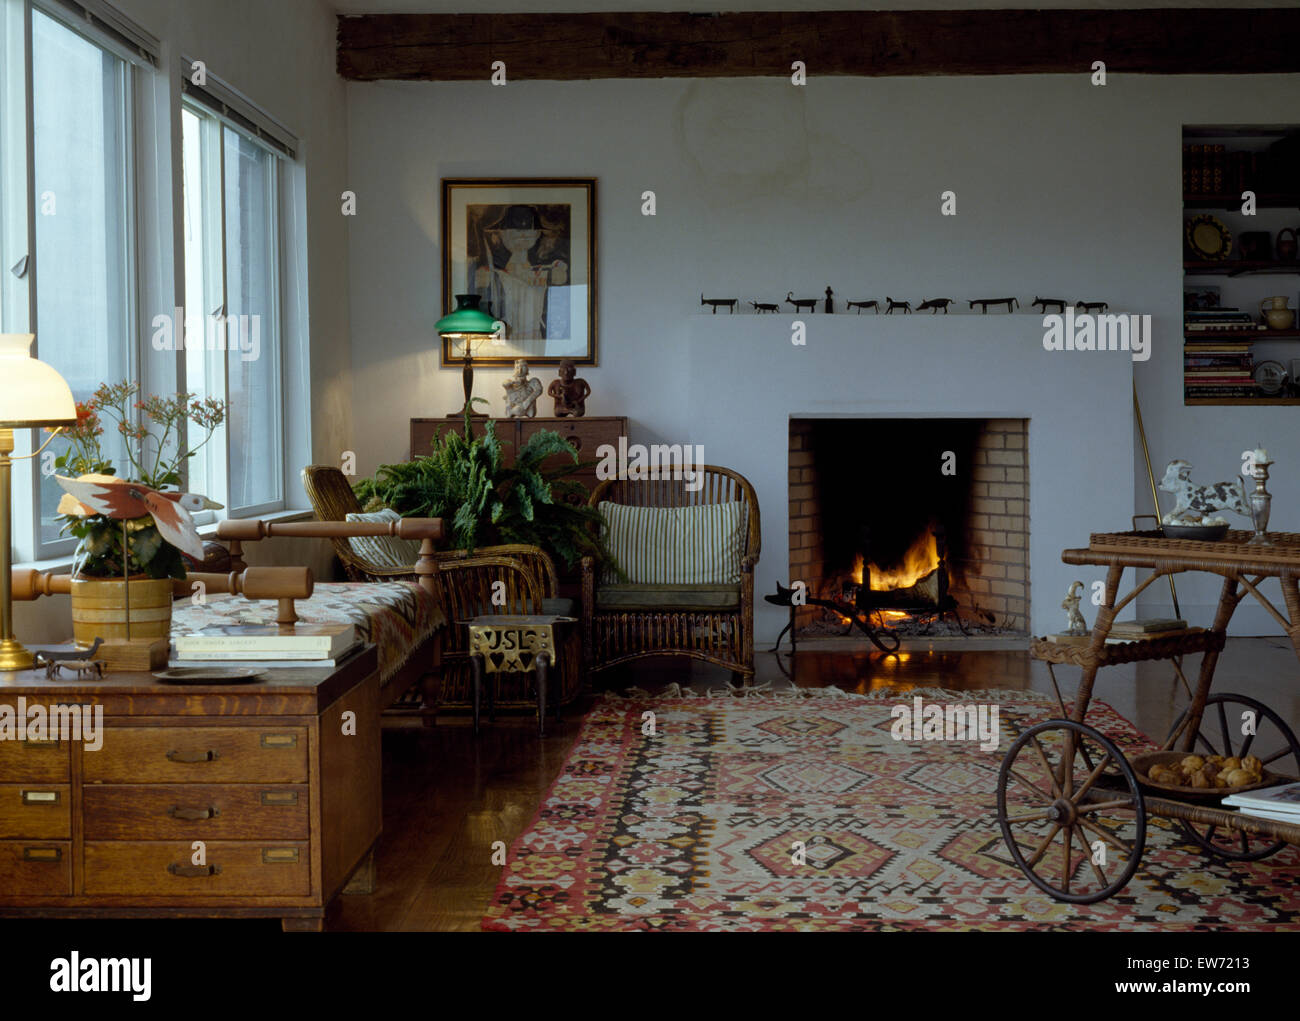 Kelim rug and old pine chest in country living room with ...